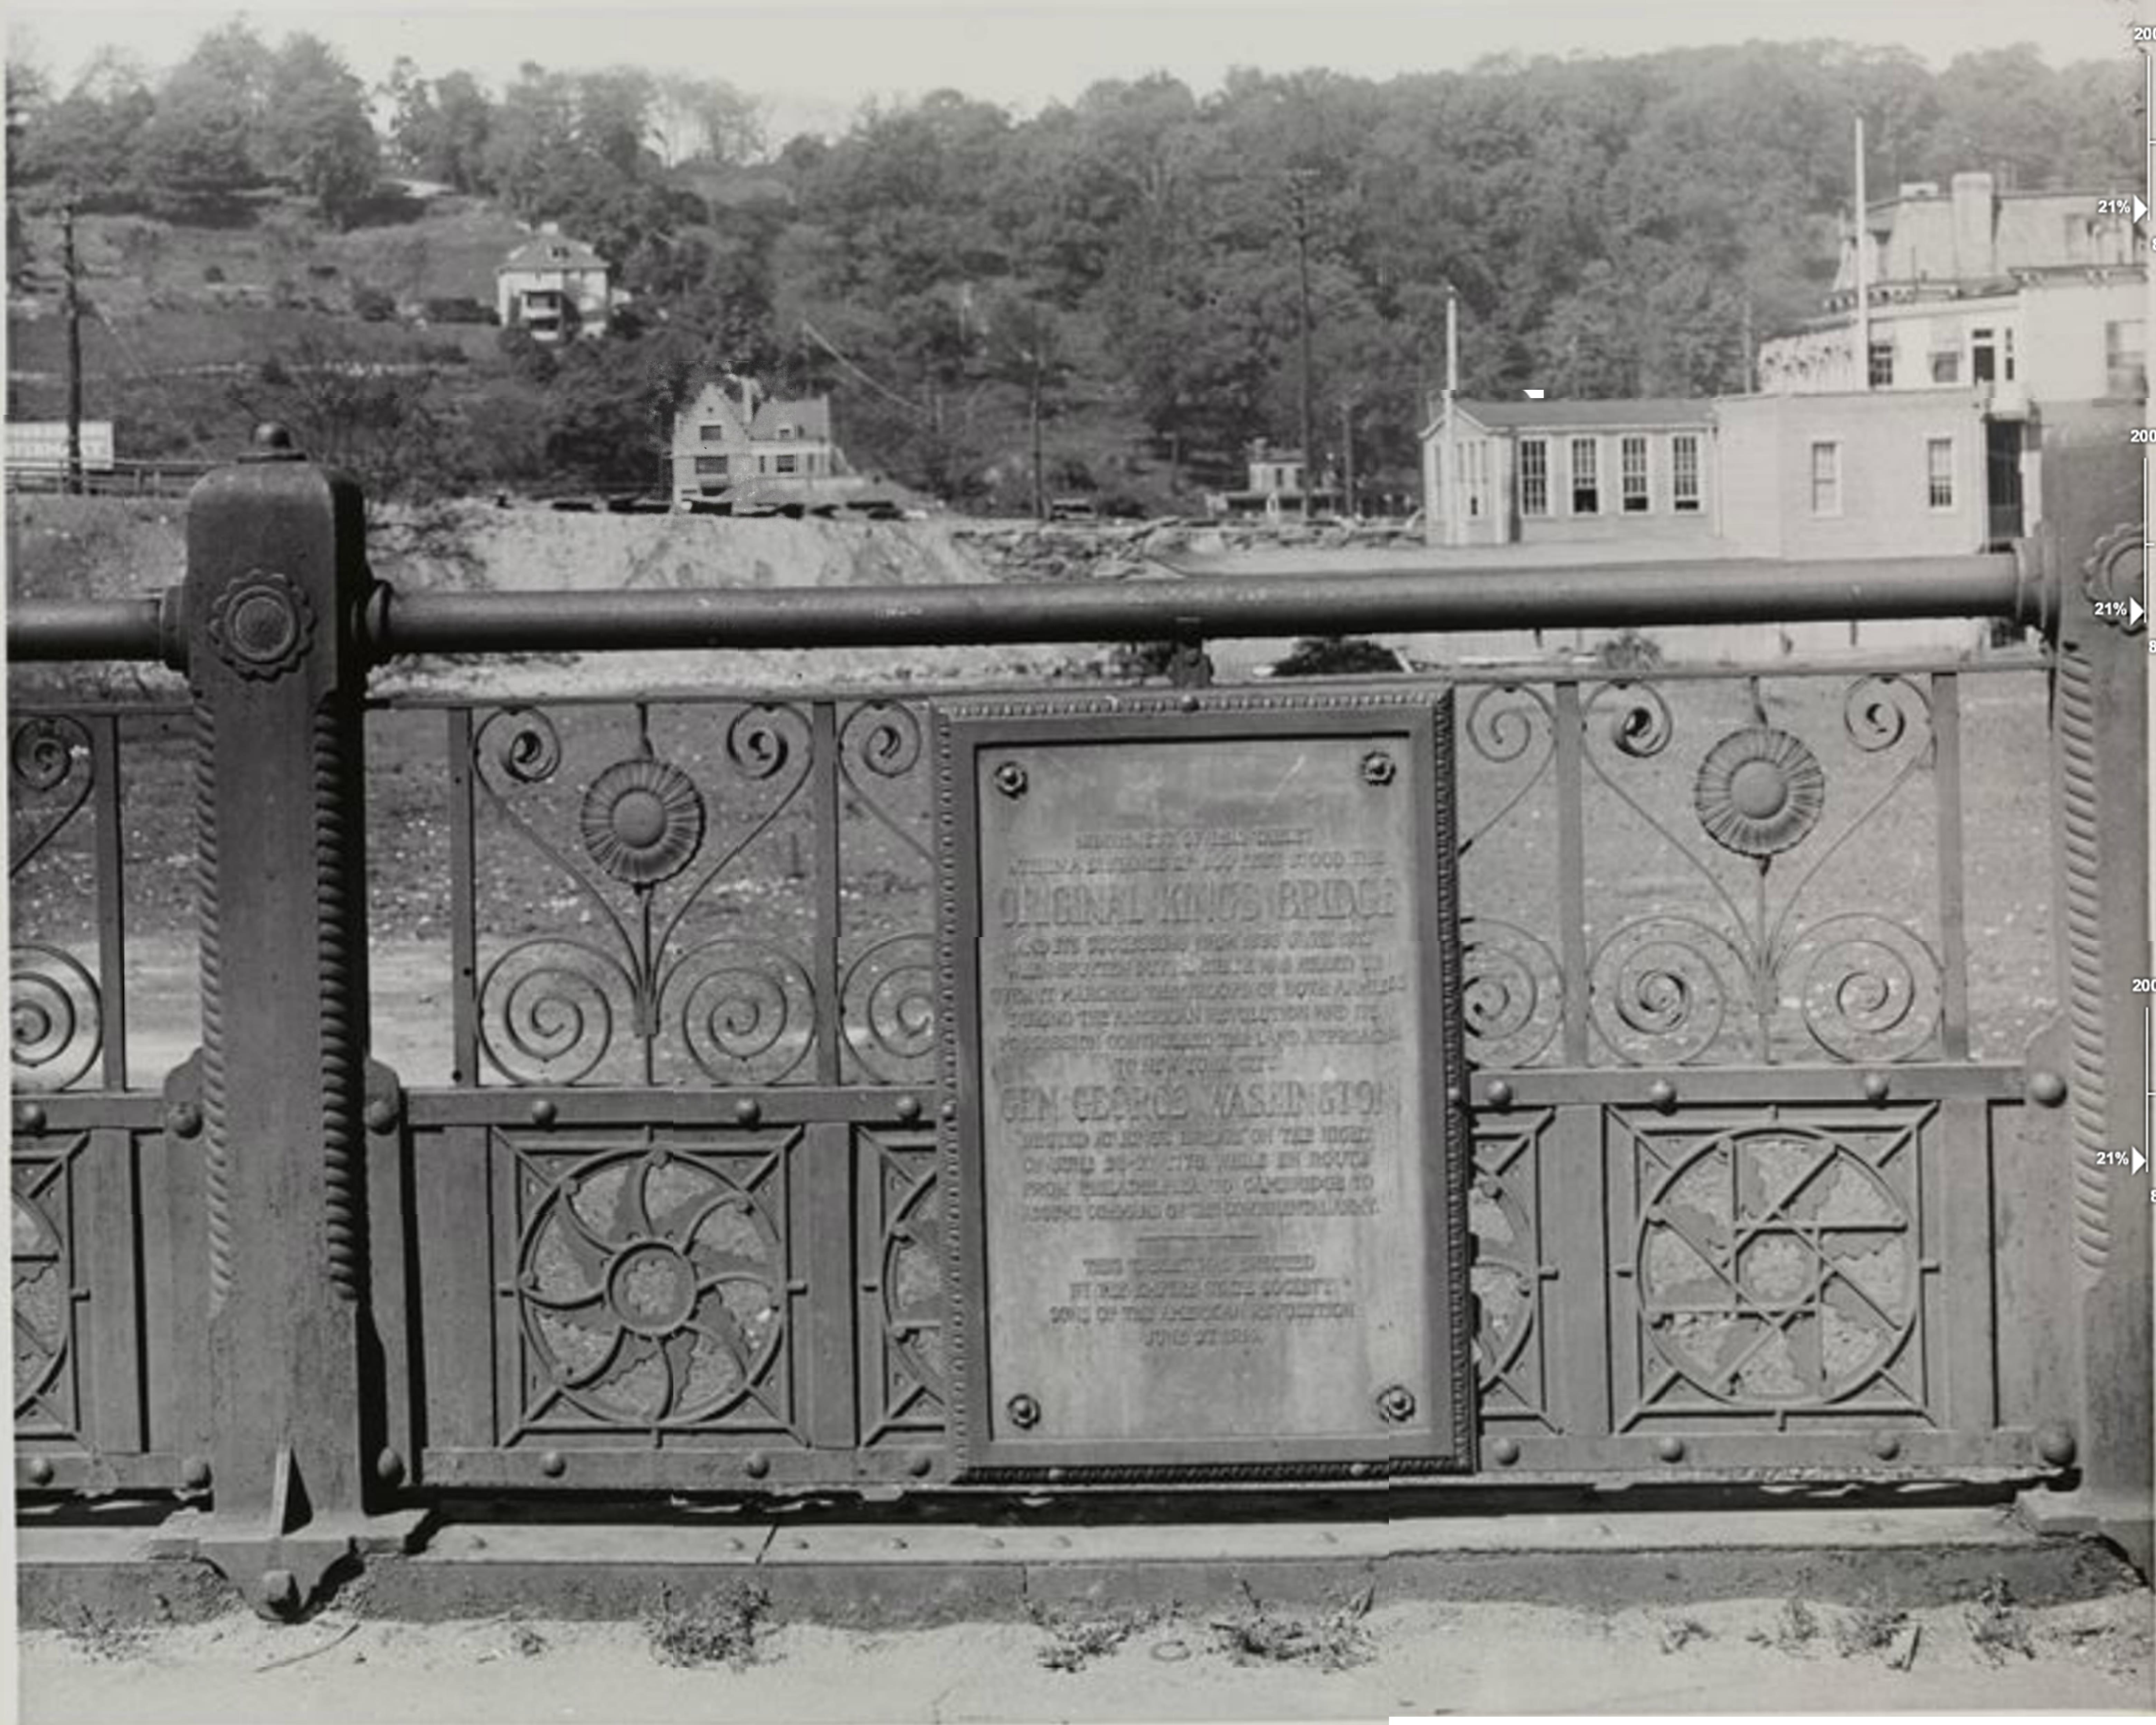 https://collections.mcny.org/Collection/[Plaque%20on%20iron%20railing%20marking%20site%20of%20original%20Kingsbridge]-2F3XC5893DG4.html